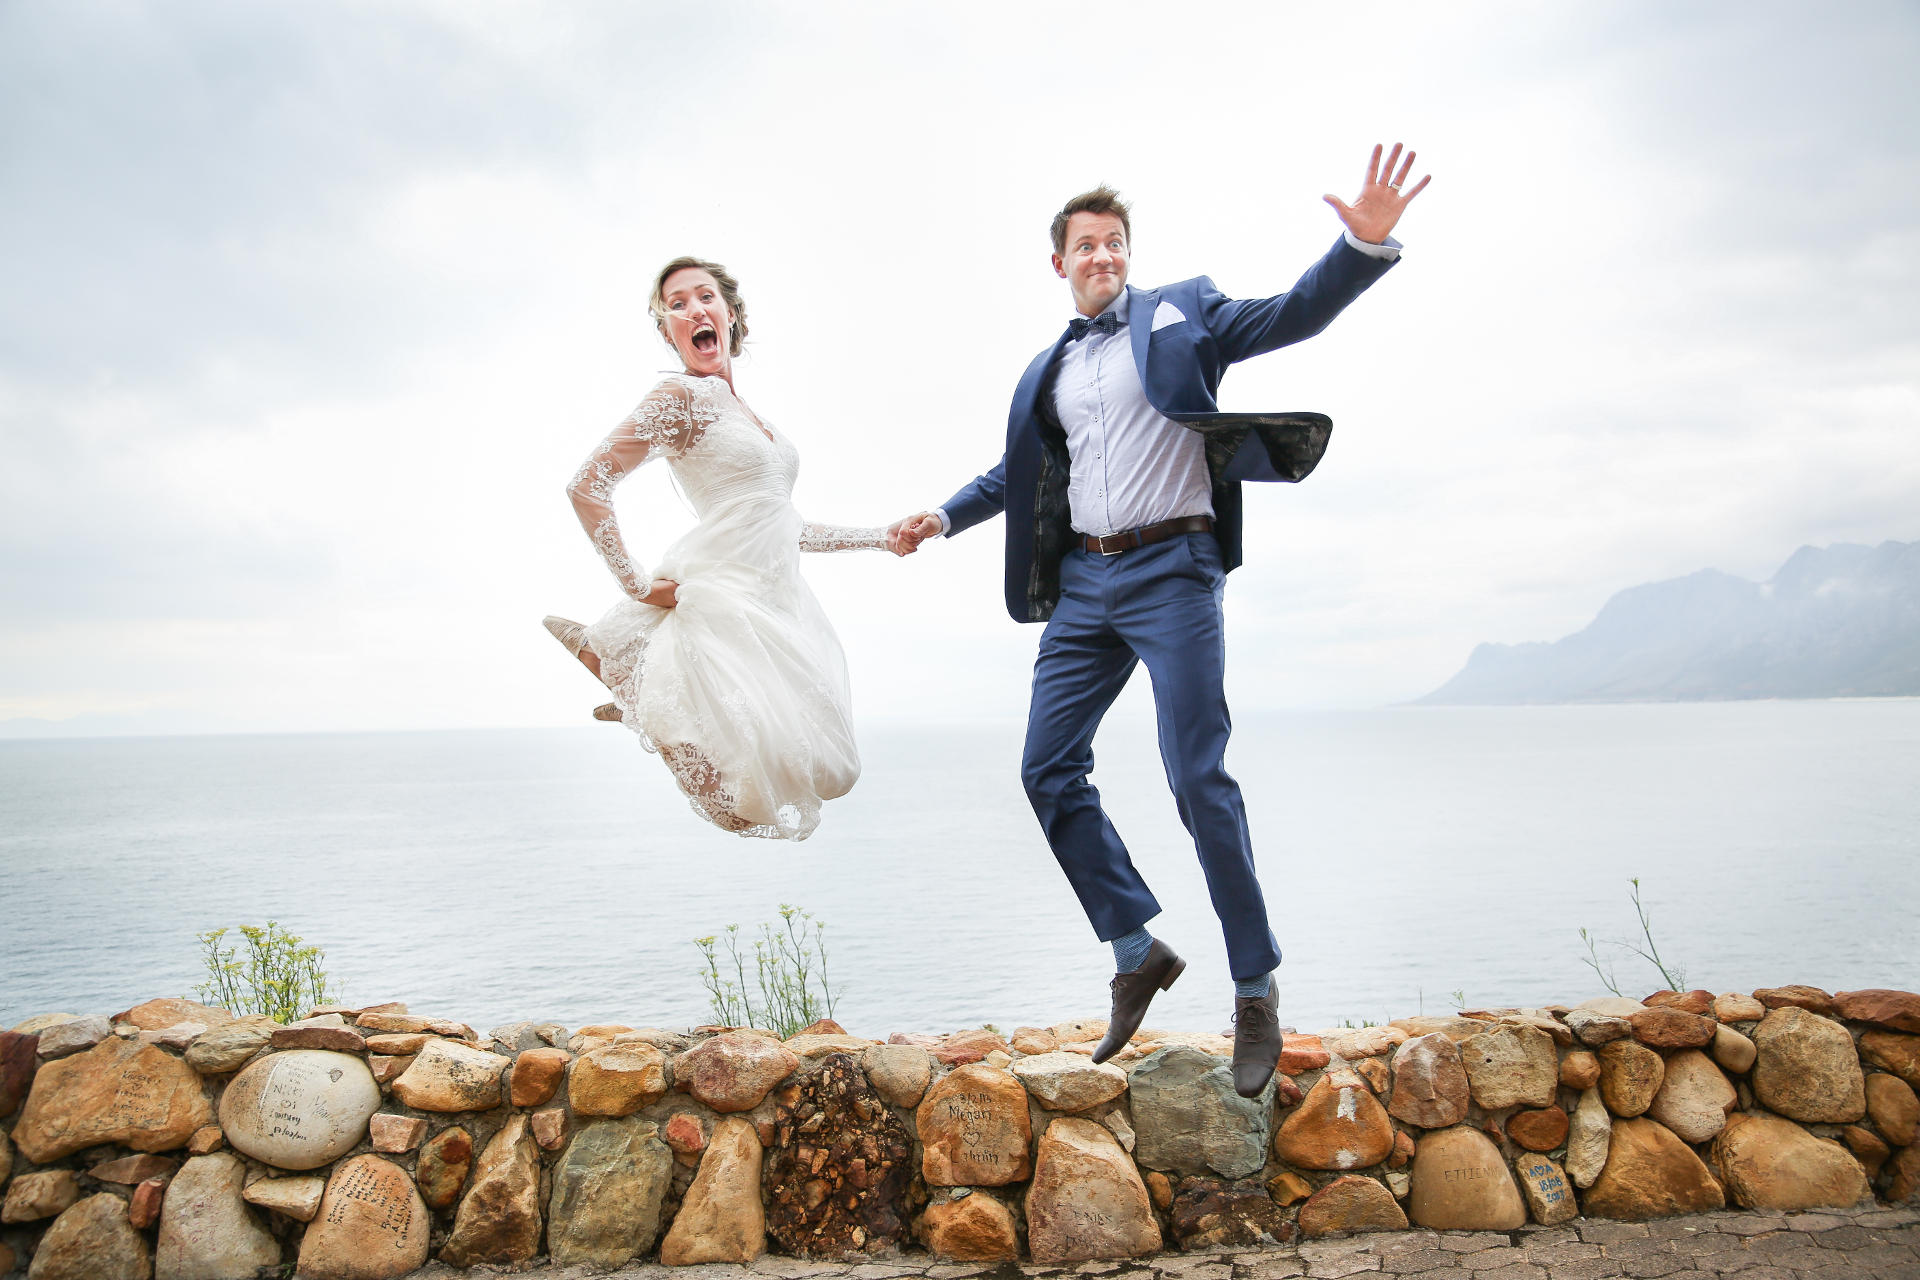 cape-town-wedding-photographers-zandri-du-preez-photography-5545-2